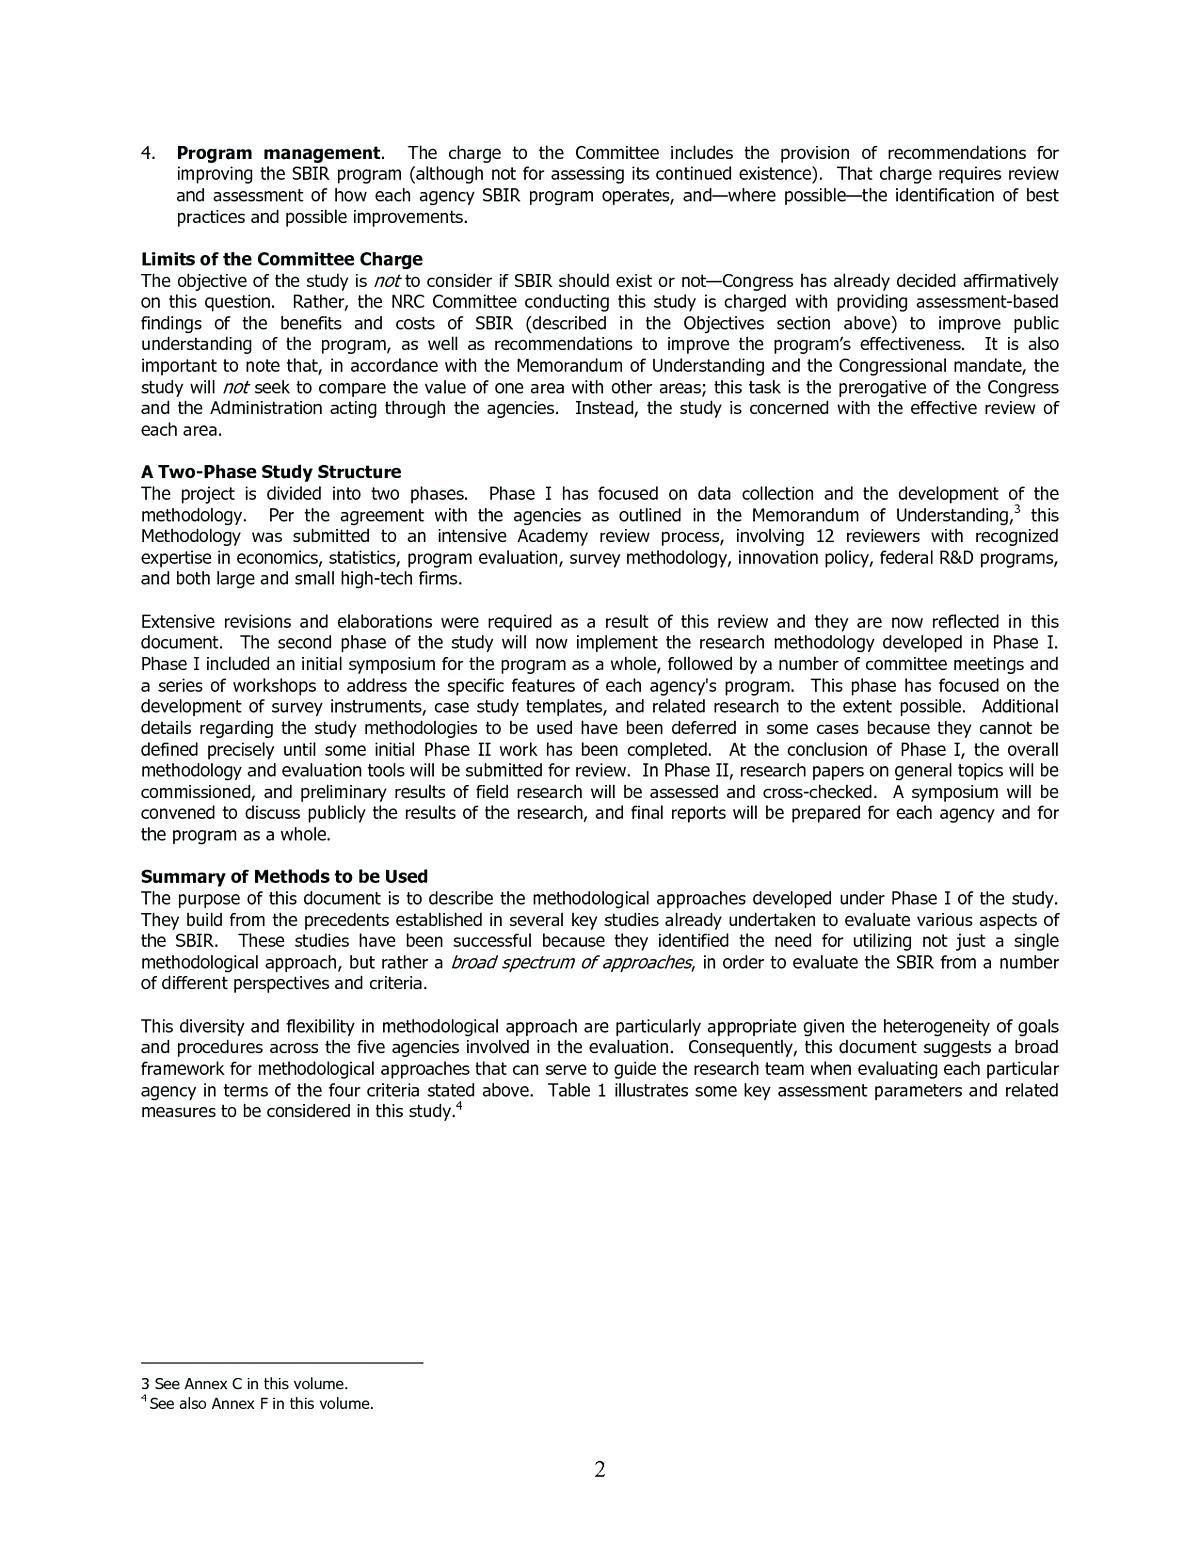 Report Template Executive Summary 5 Professional Templates In 2020 Executive Summary Template Executive Summary Report Template